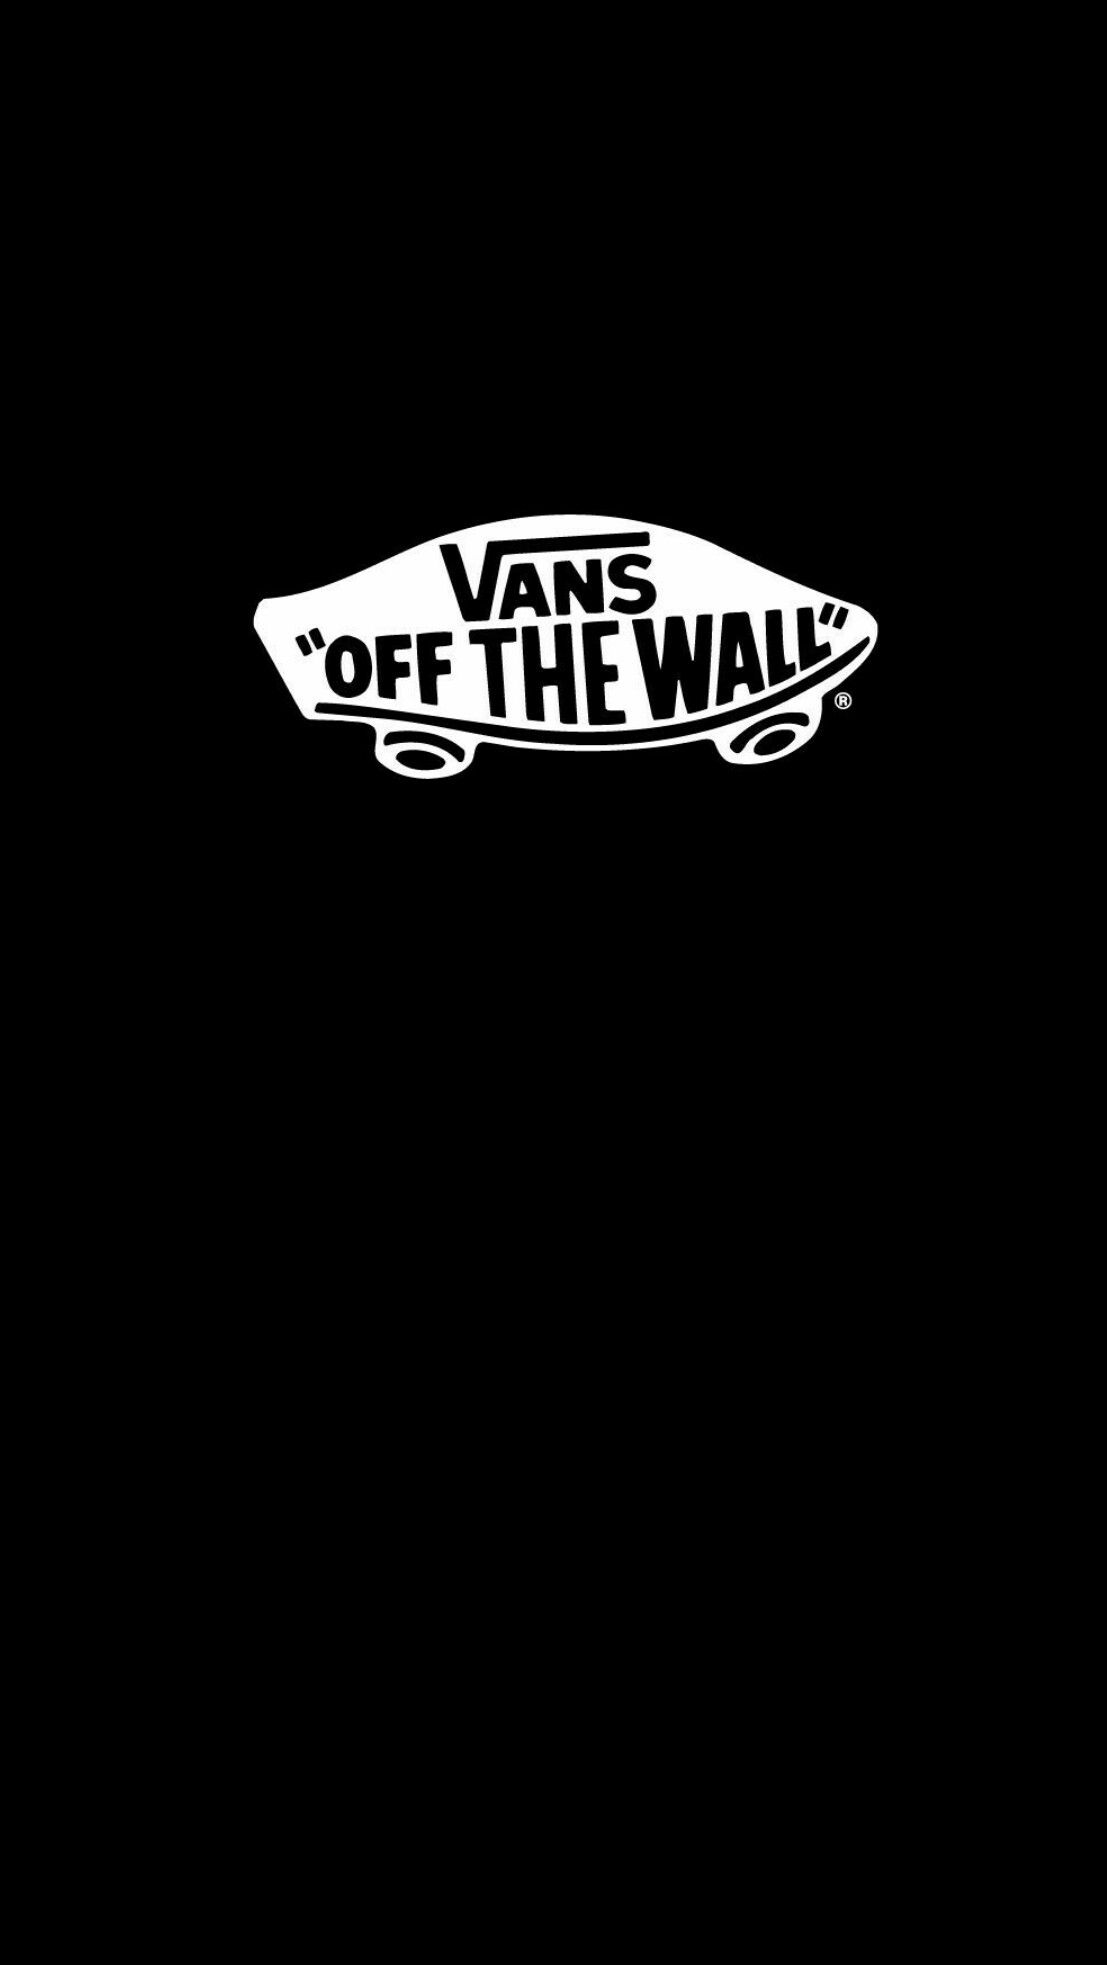 Vans Black Wallpaper Iphone Android With Images Iphone